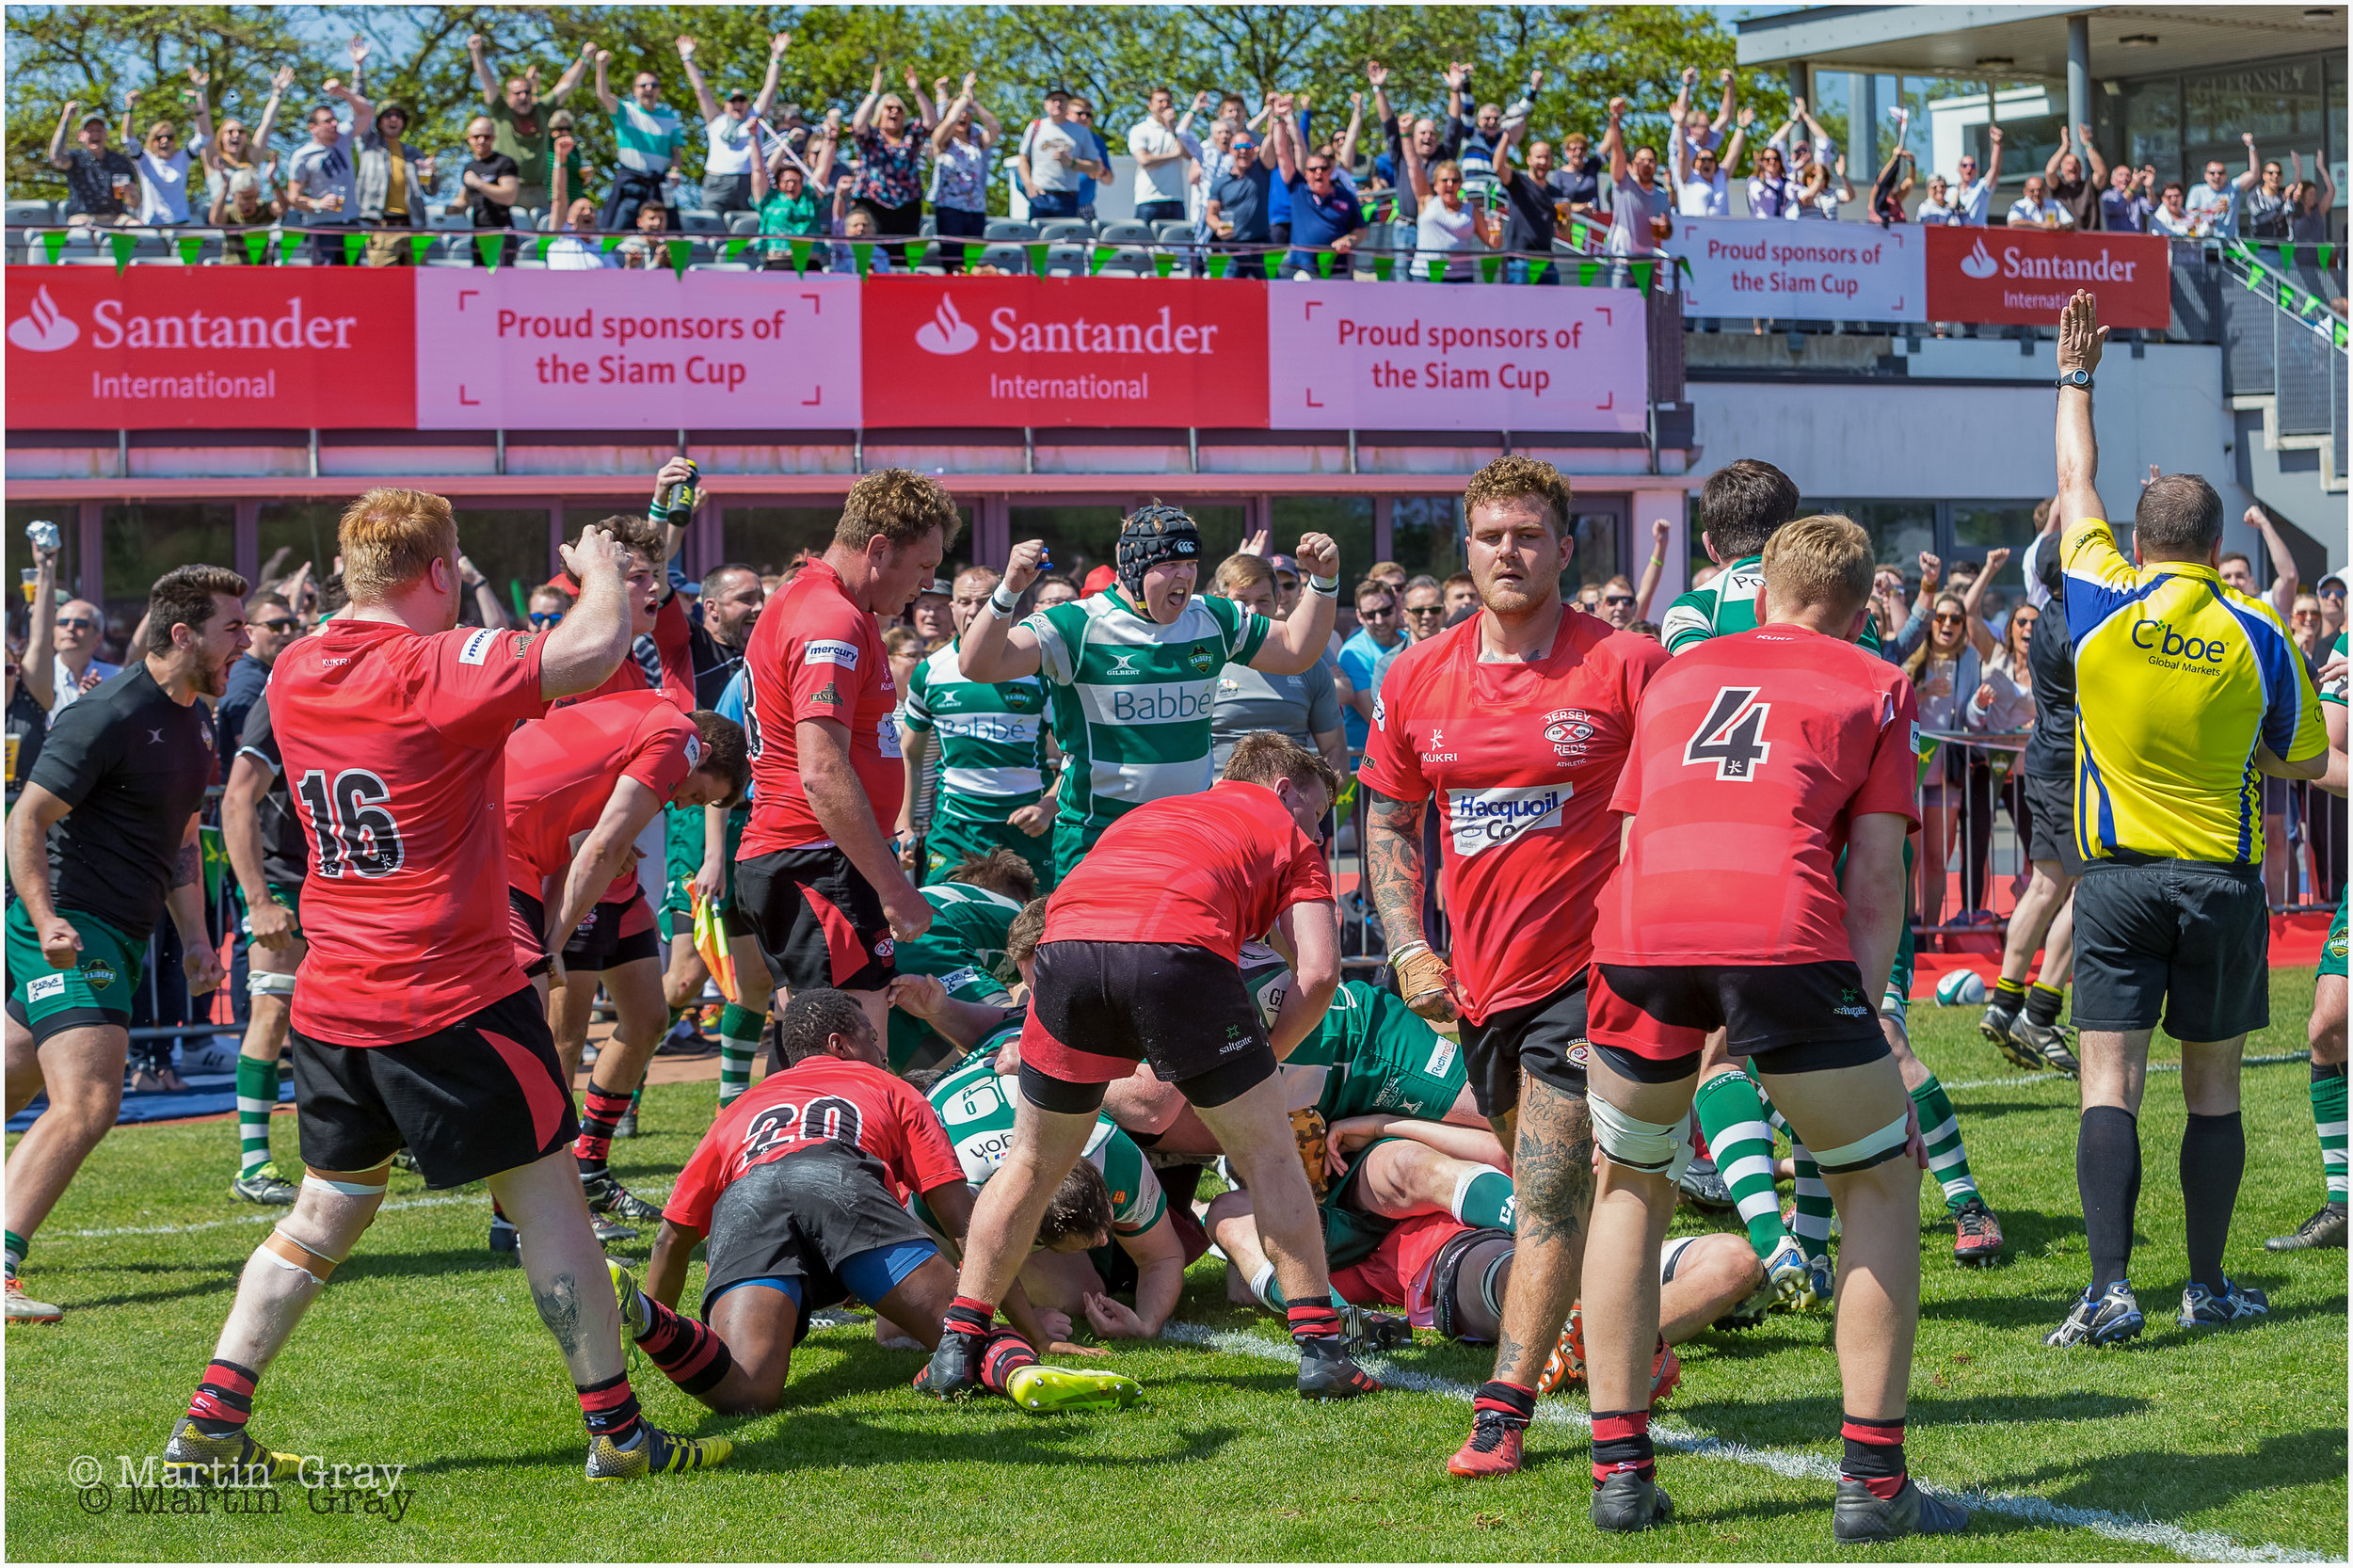 The Fallaize Cup played during the 2018 Siam Cup day at Footes Lane on 5th May 2018... Guernsey 2nd's defeat Jersey 2nd's 15-13 in a brilliant game of rugby